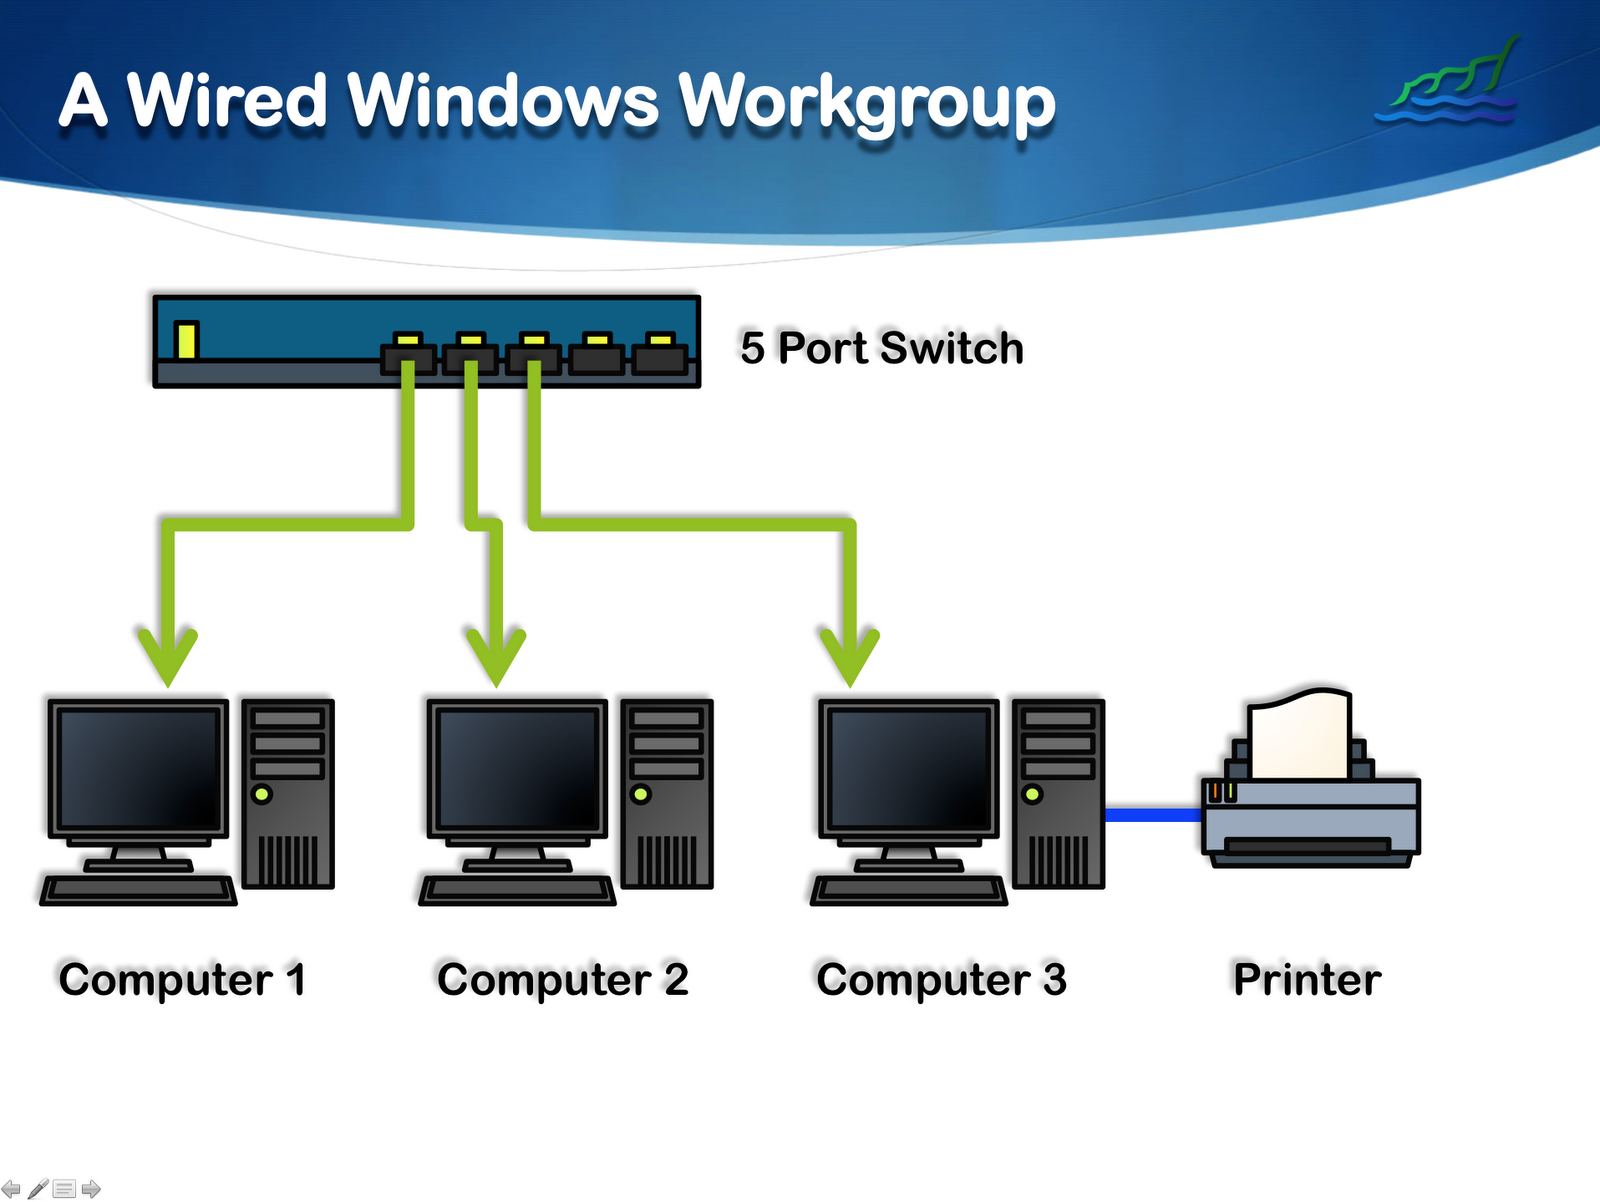 access this computer from the network: